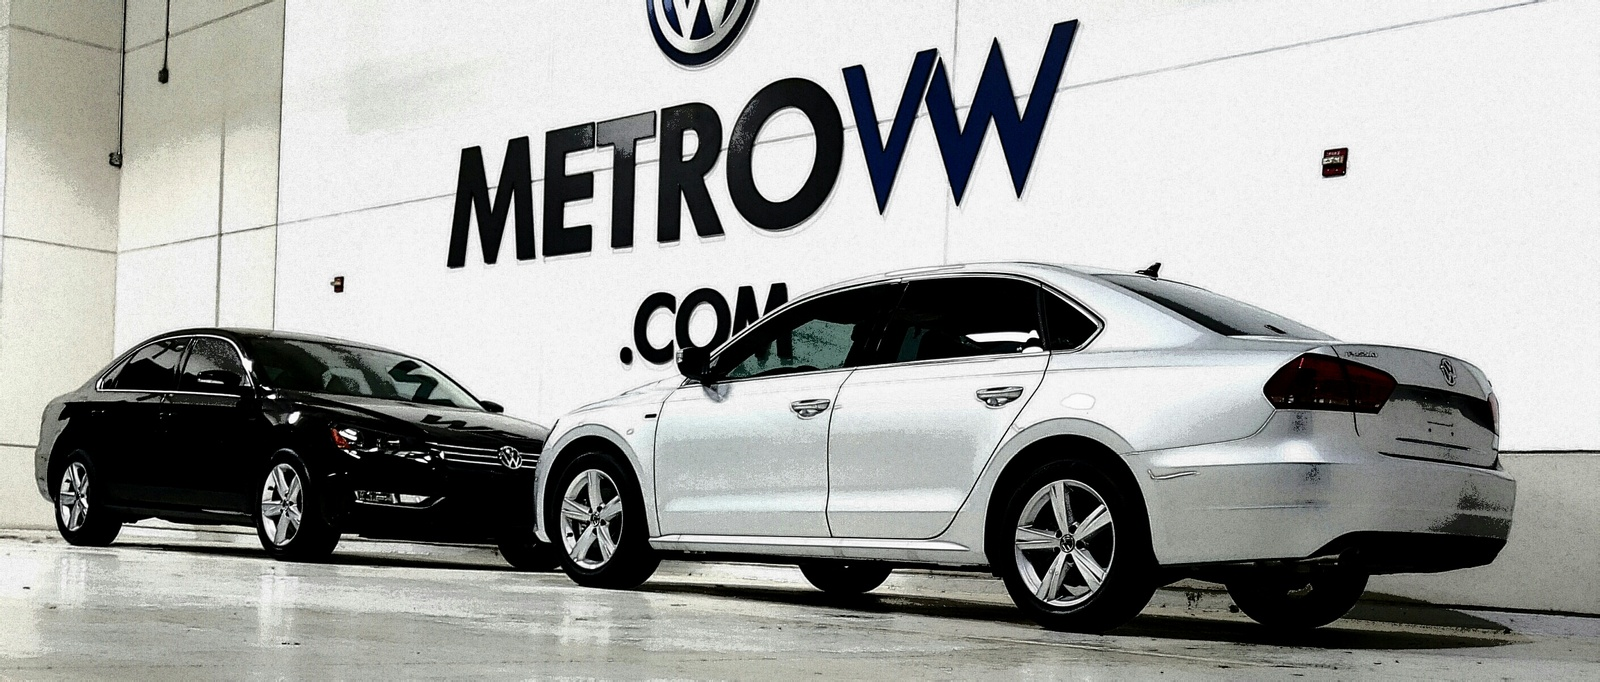 Airport Acura Used Car Inventory